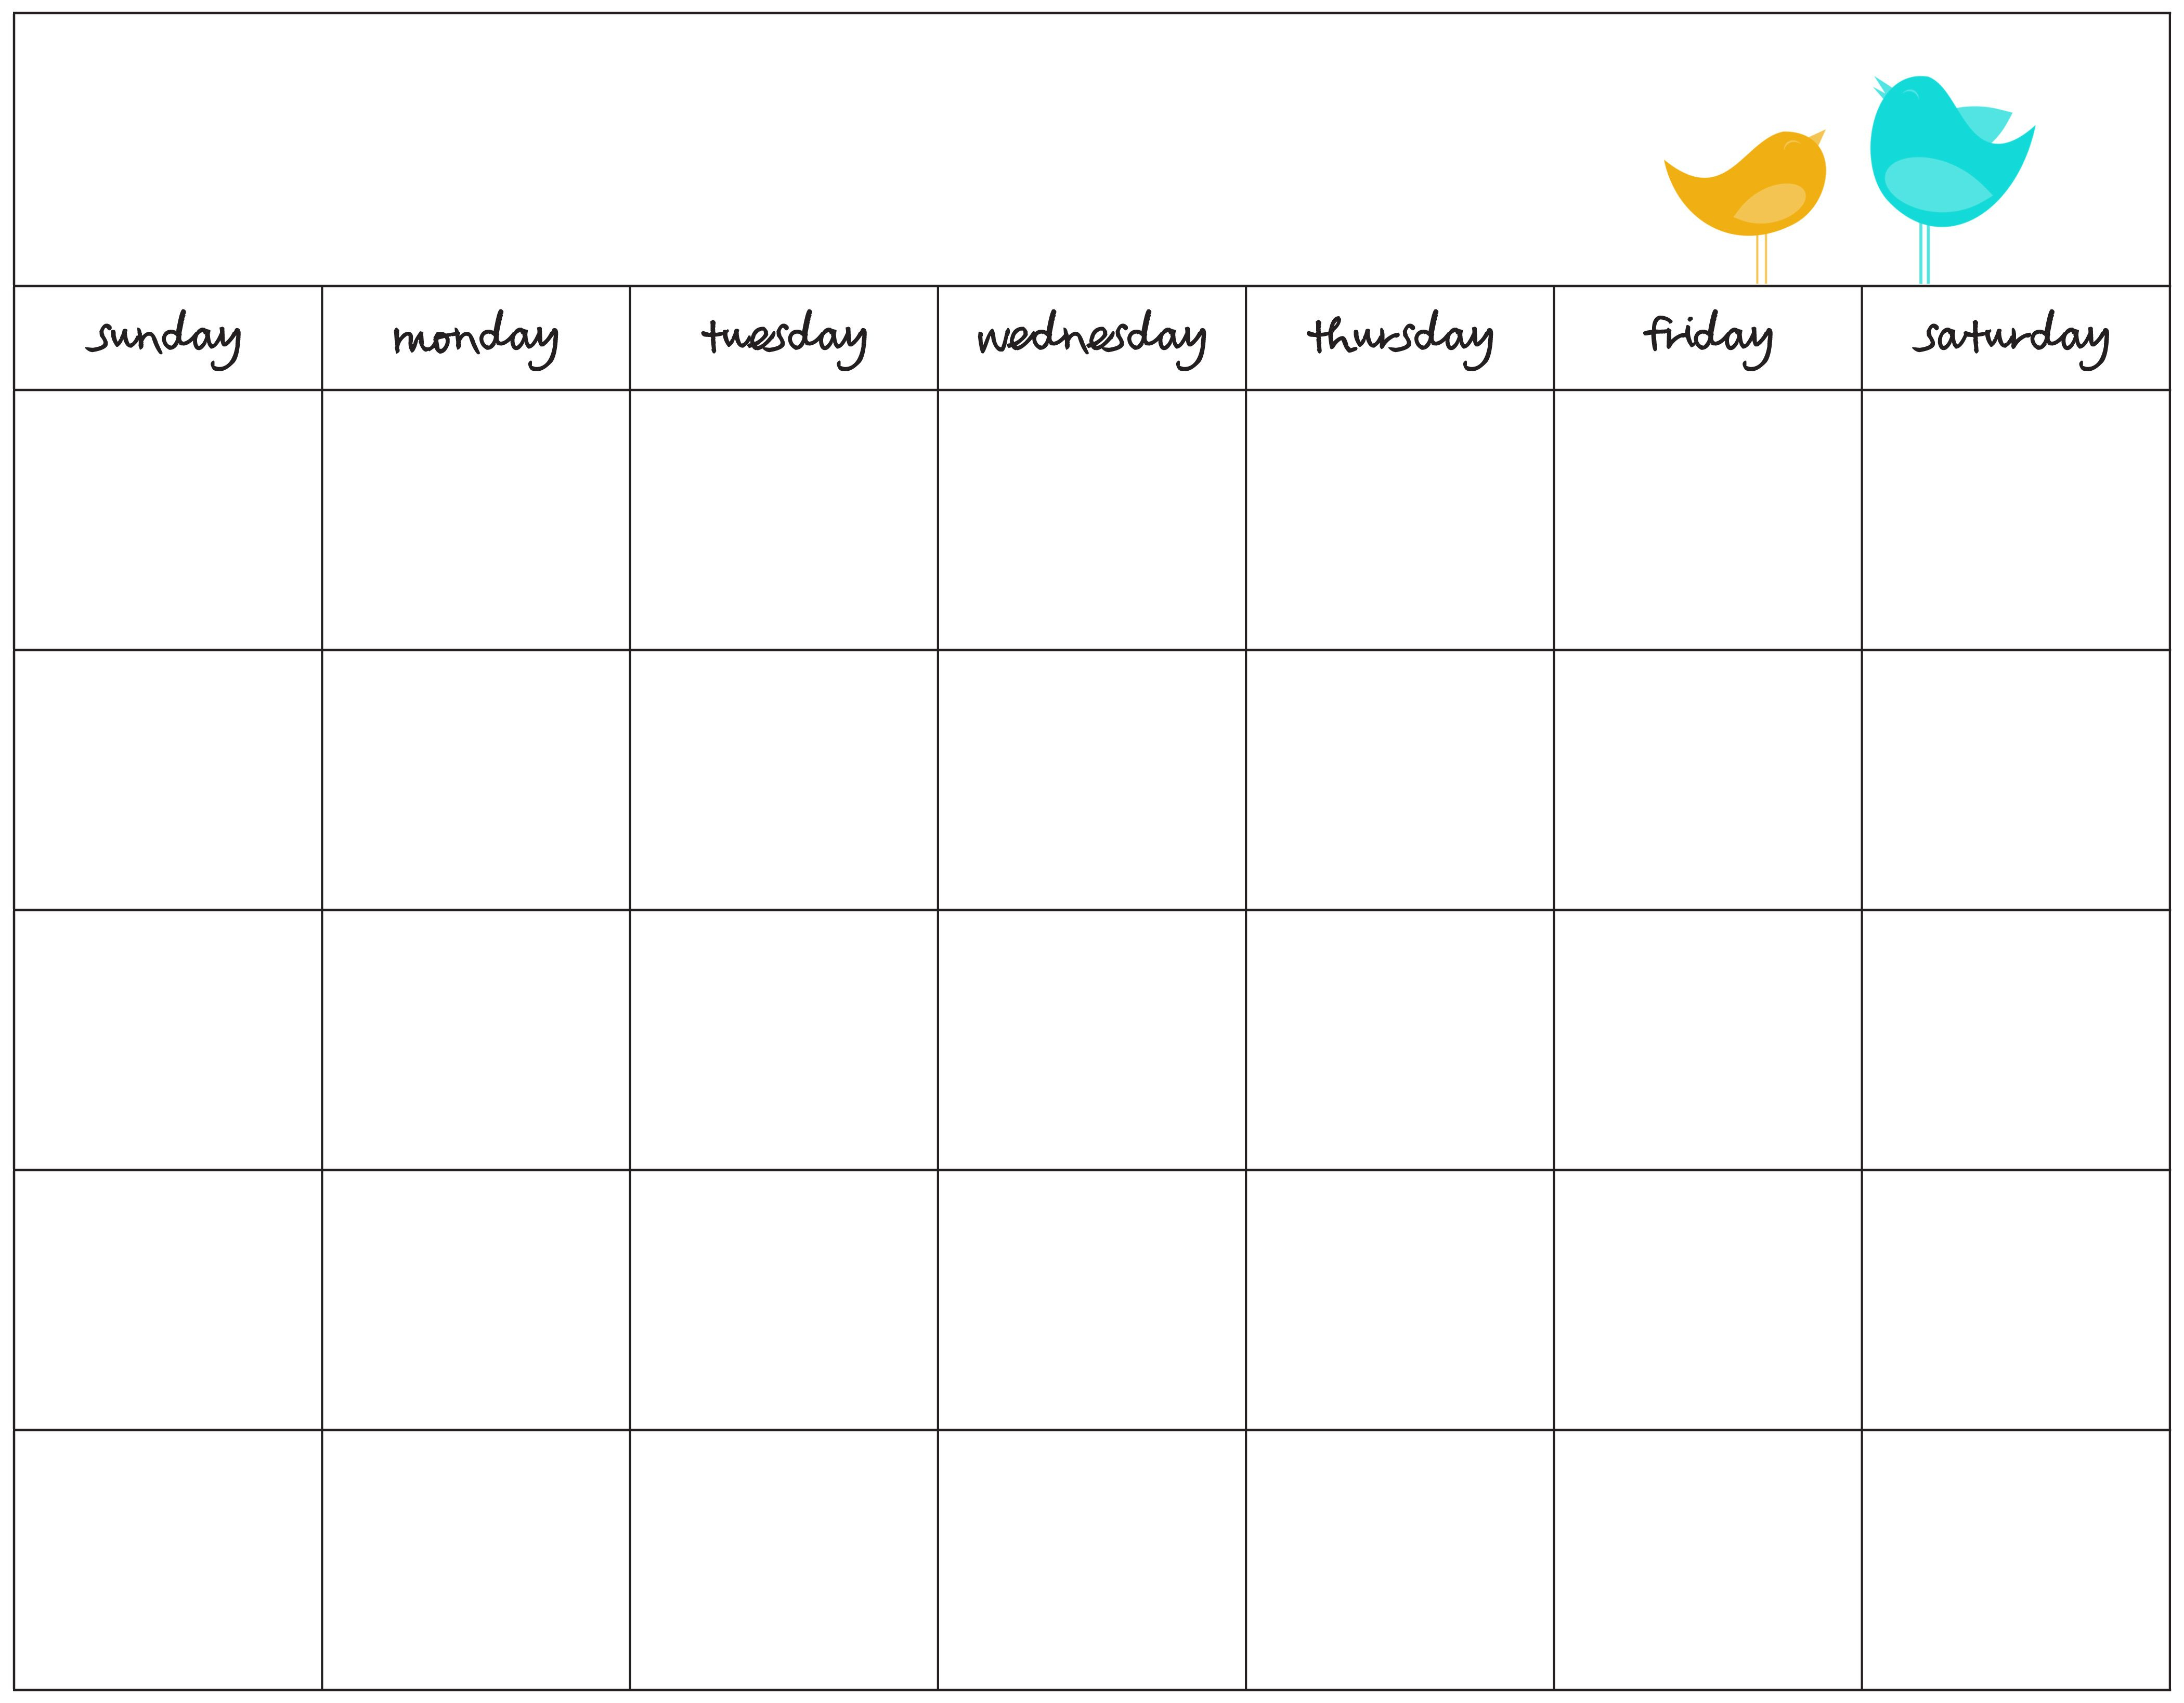 Blank Calendar Print Out | Blank Calendar | Print Calendar, Blank regarding Print Off A Blank Calendar For